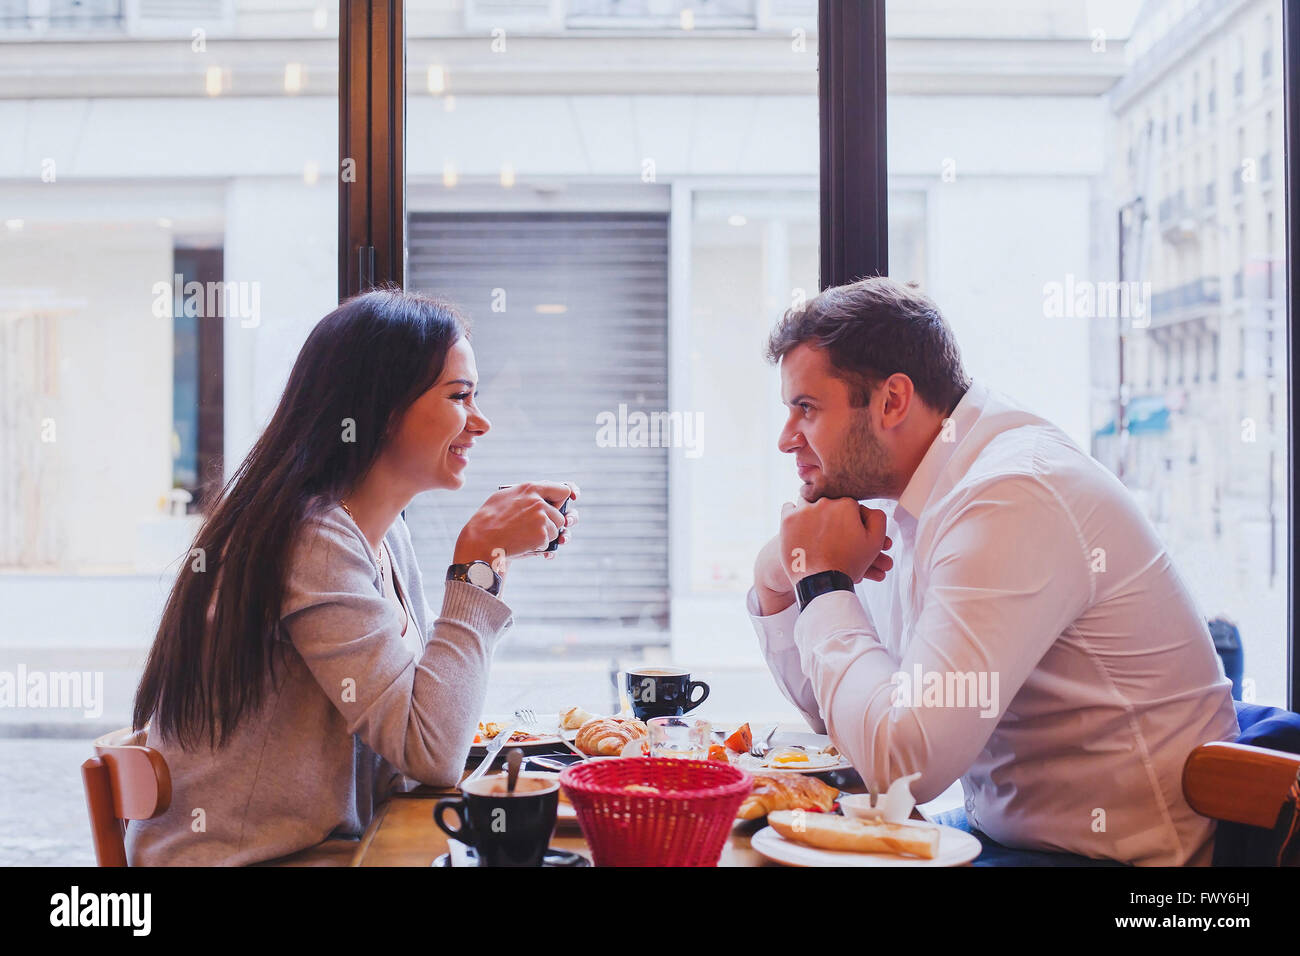 Manger dans restaurant, happy smiling couple having lunch in cafe, datant Photo Stock